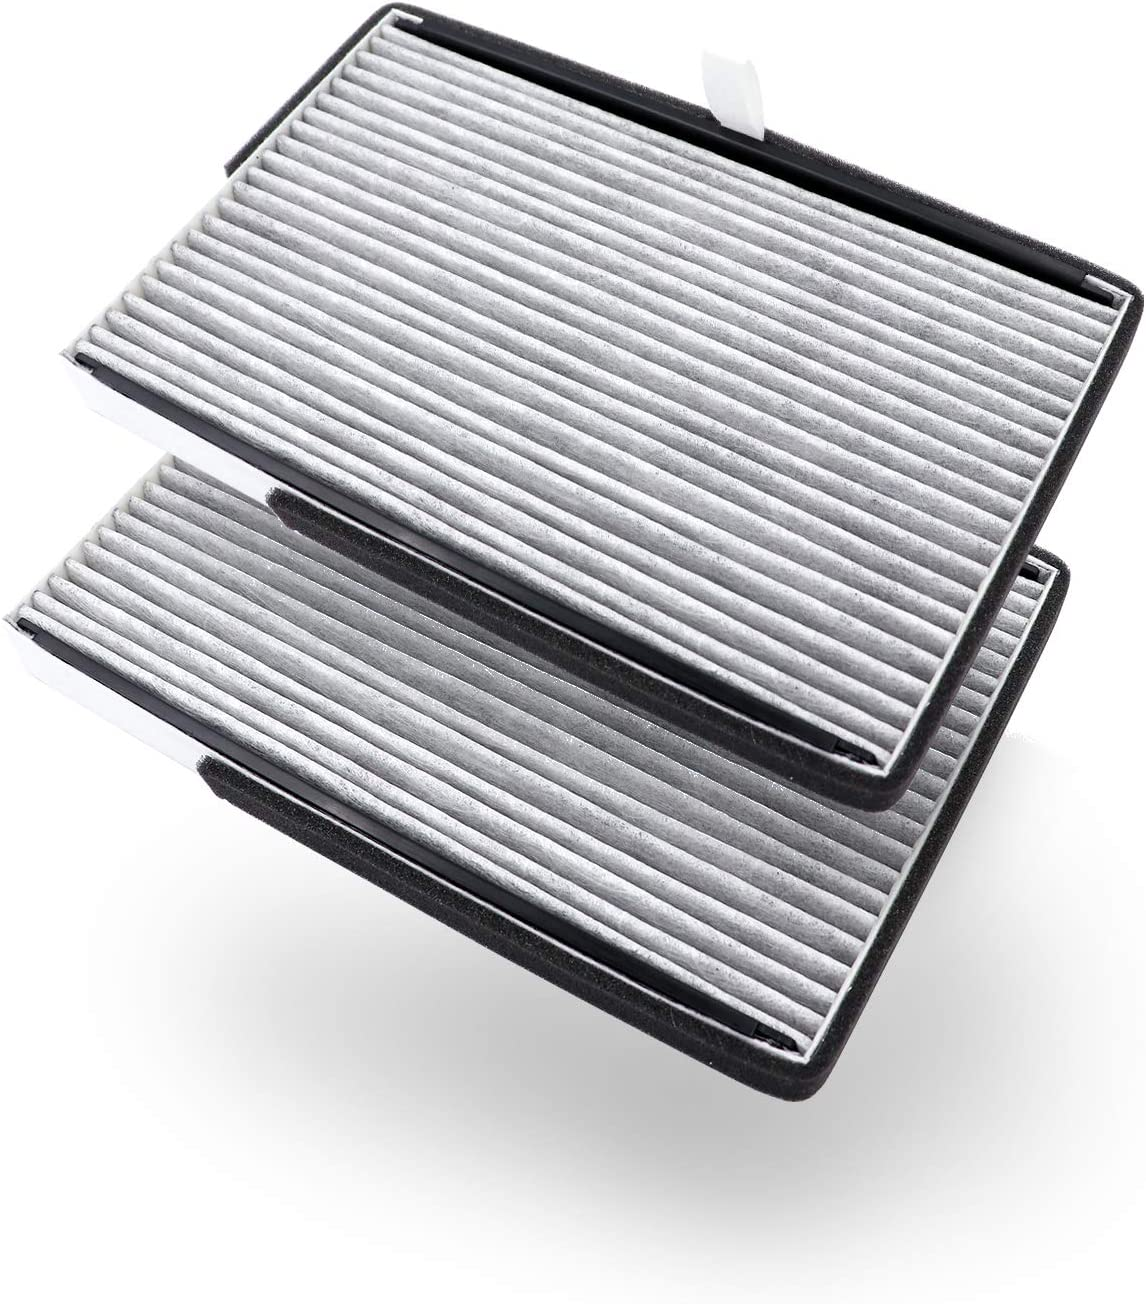 Amazon Basics Cabin air filter Be super Popular brand welcome 2-pack with vehic a gray works